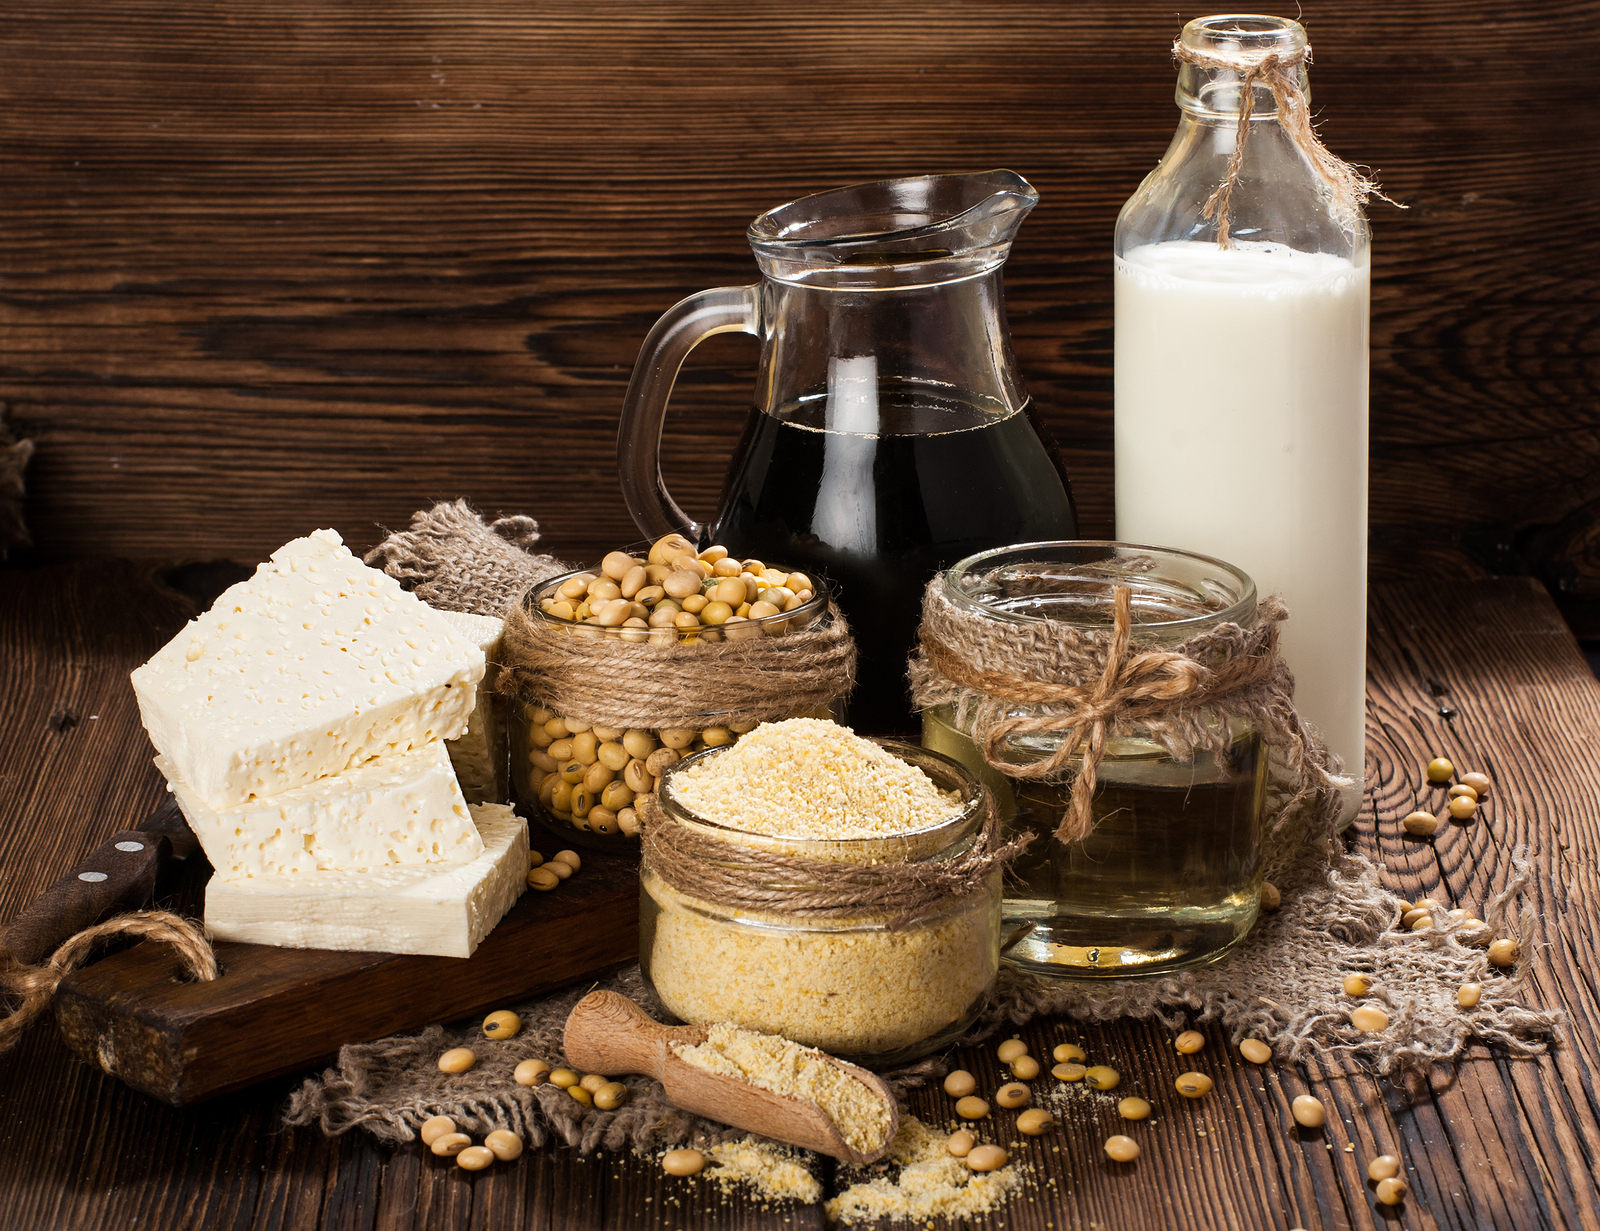 bigstock-Soy-products-soy-flour-tofu-120326774